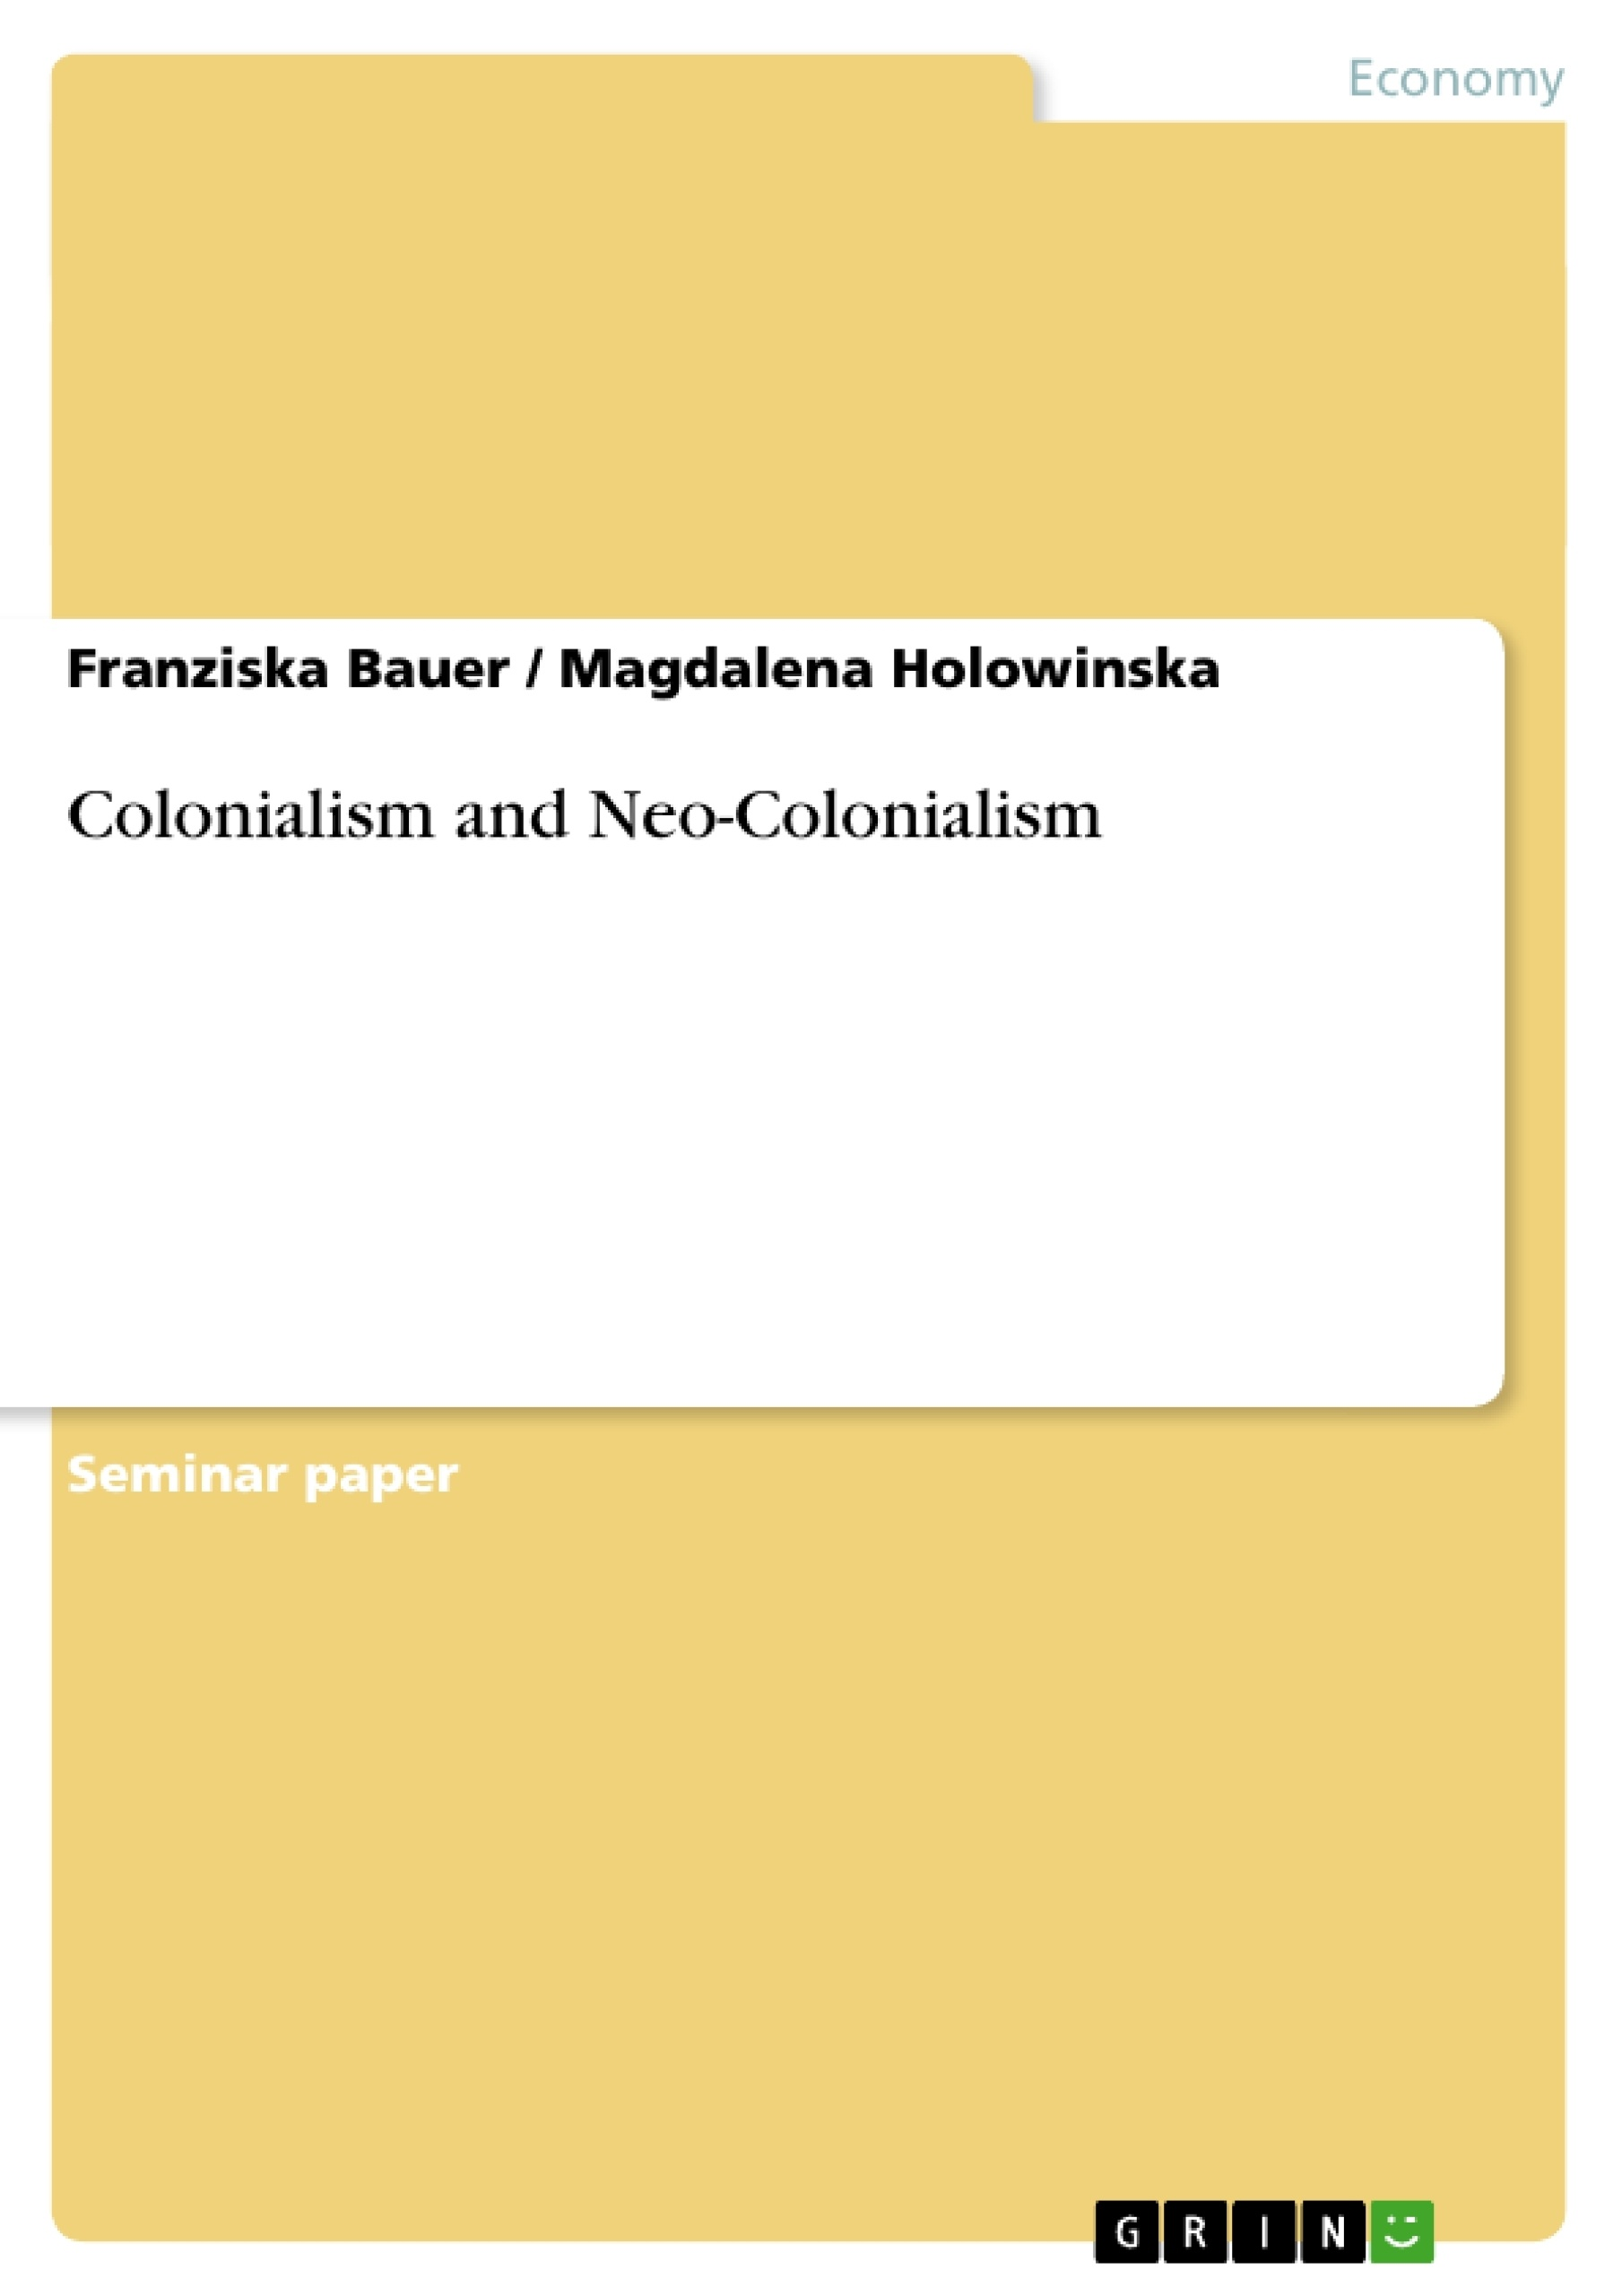 neo colonialism essays After colonialism ended, the social phenomenon of neo-colonialism began the country is free from direct foreign rule but the economic infrastructure is still in read full essay.